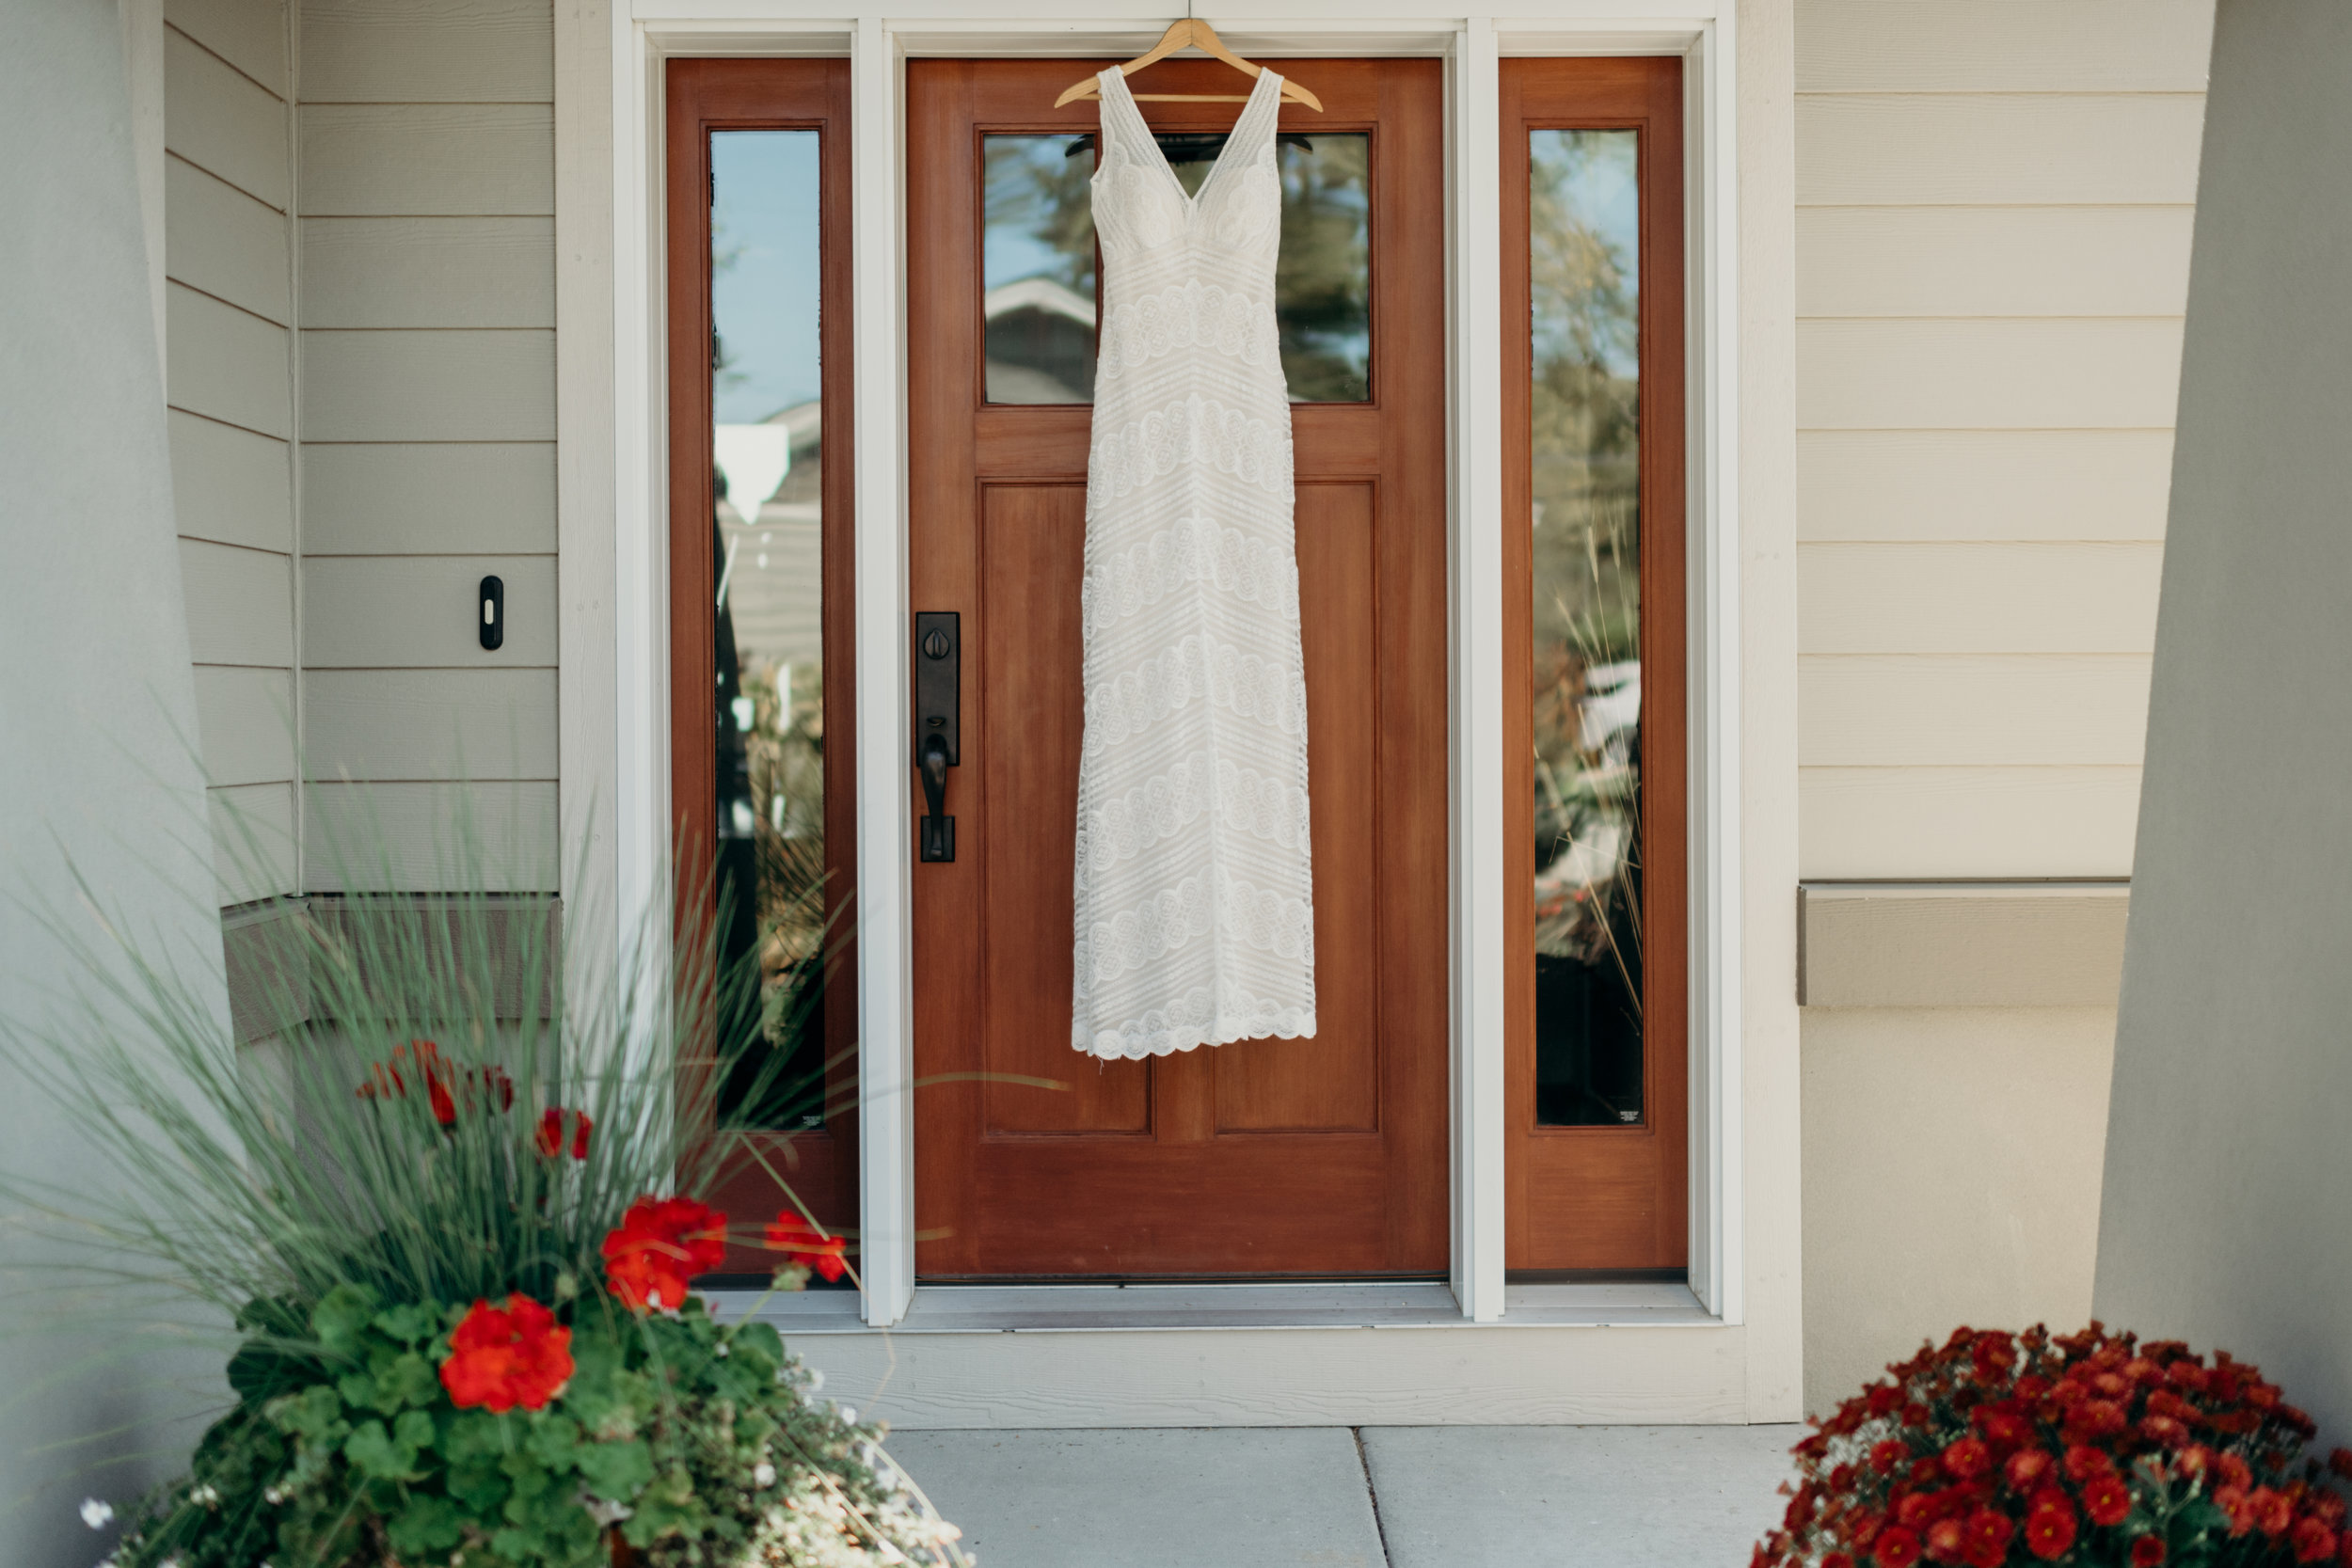 Lace bridal gown hanging on a front door.